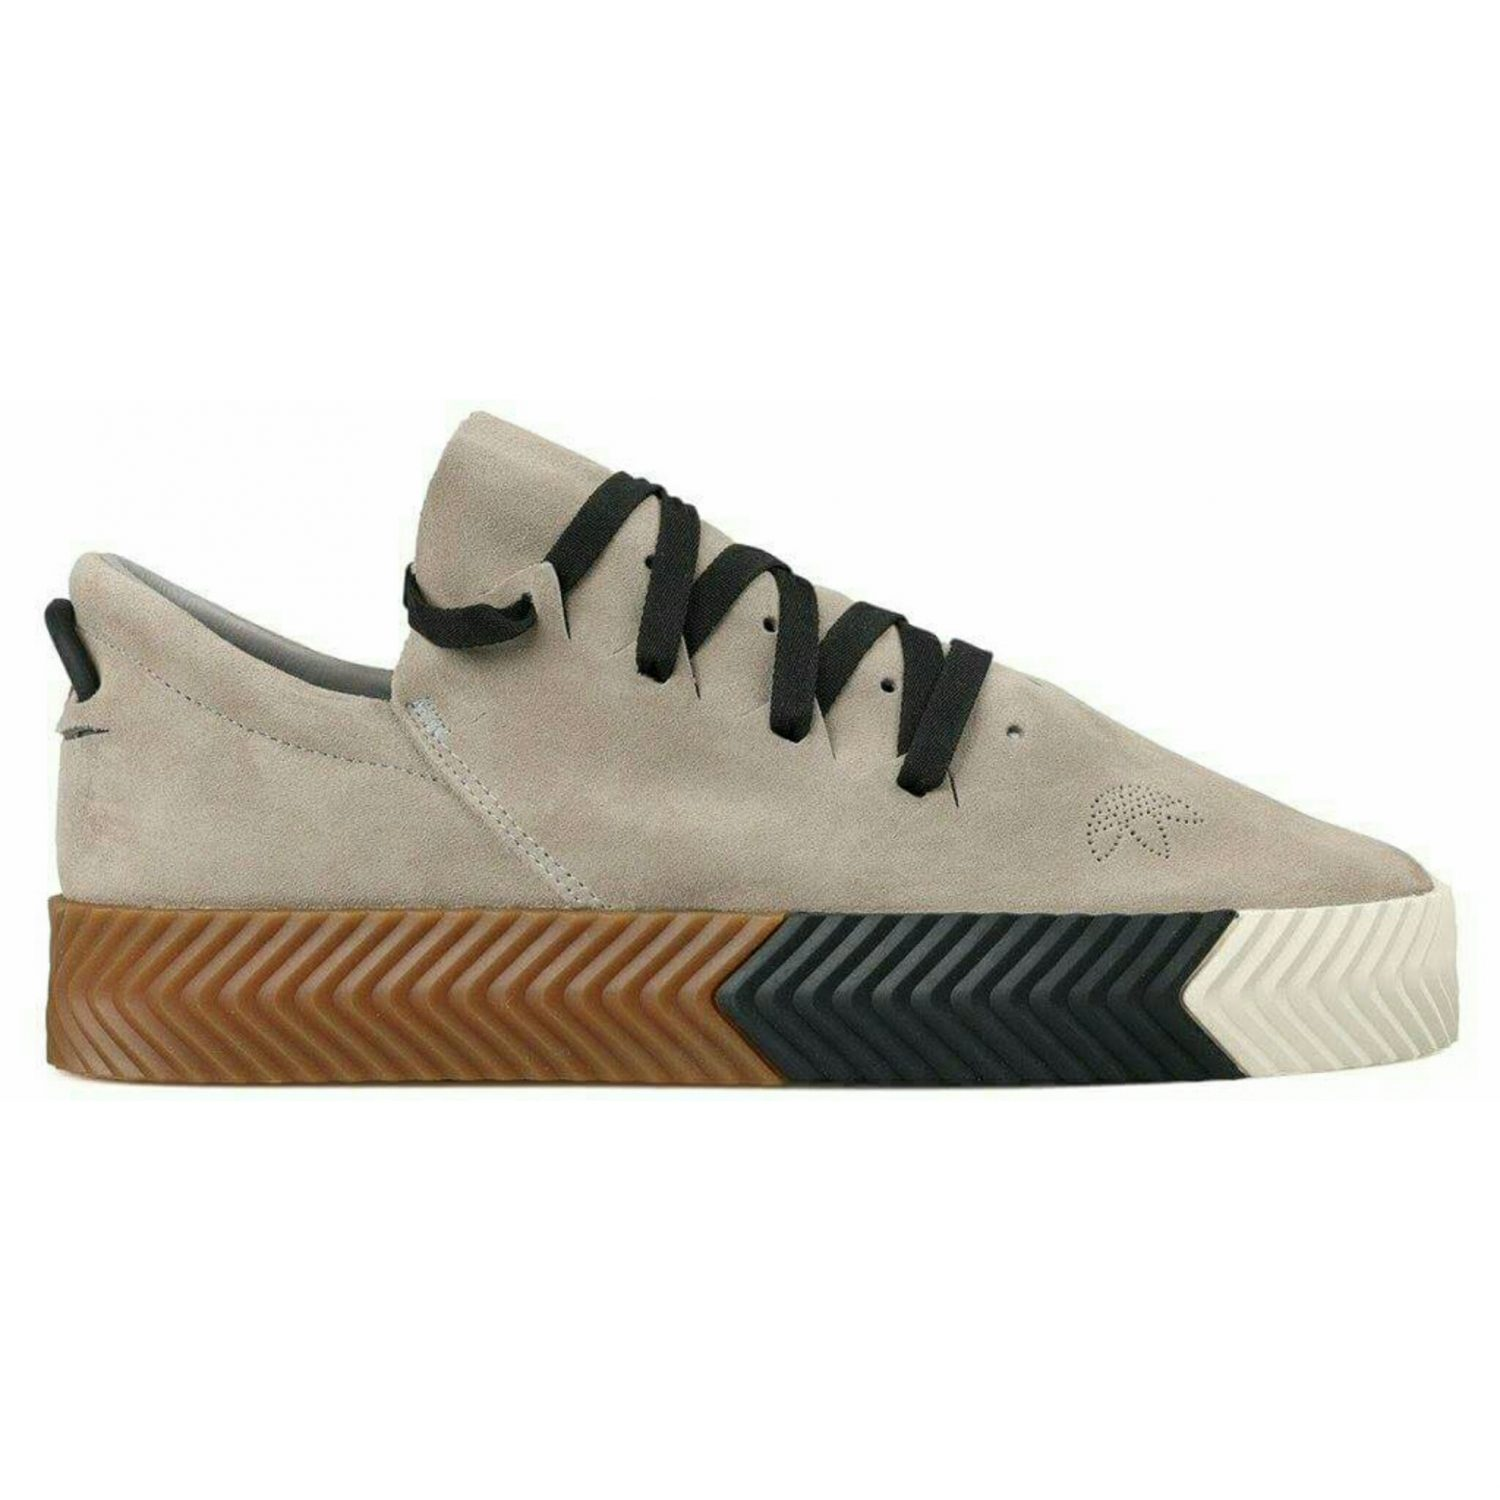 Adidas X Alexander Wang : Buy Adidas Shoes Online for Men